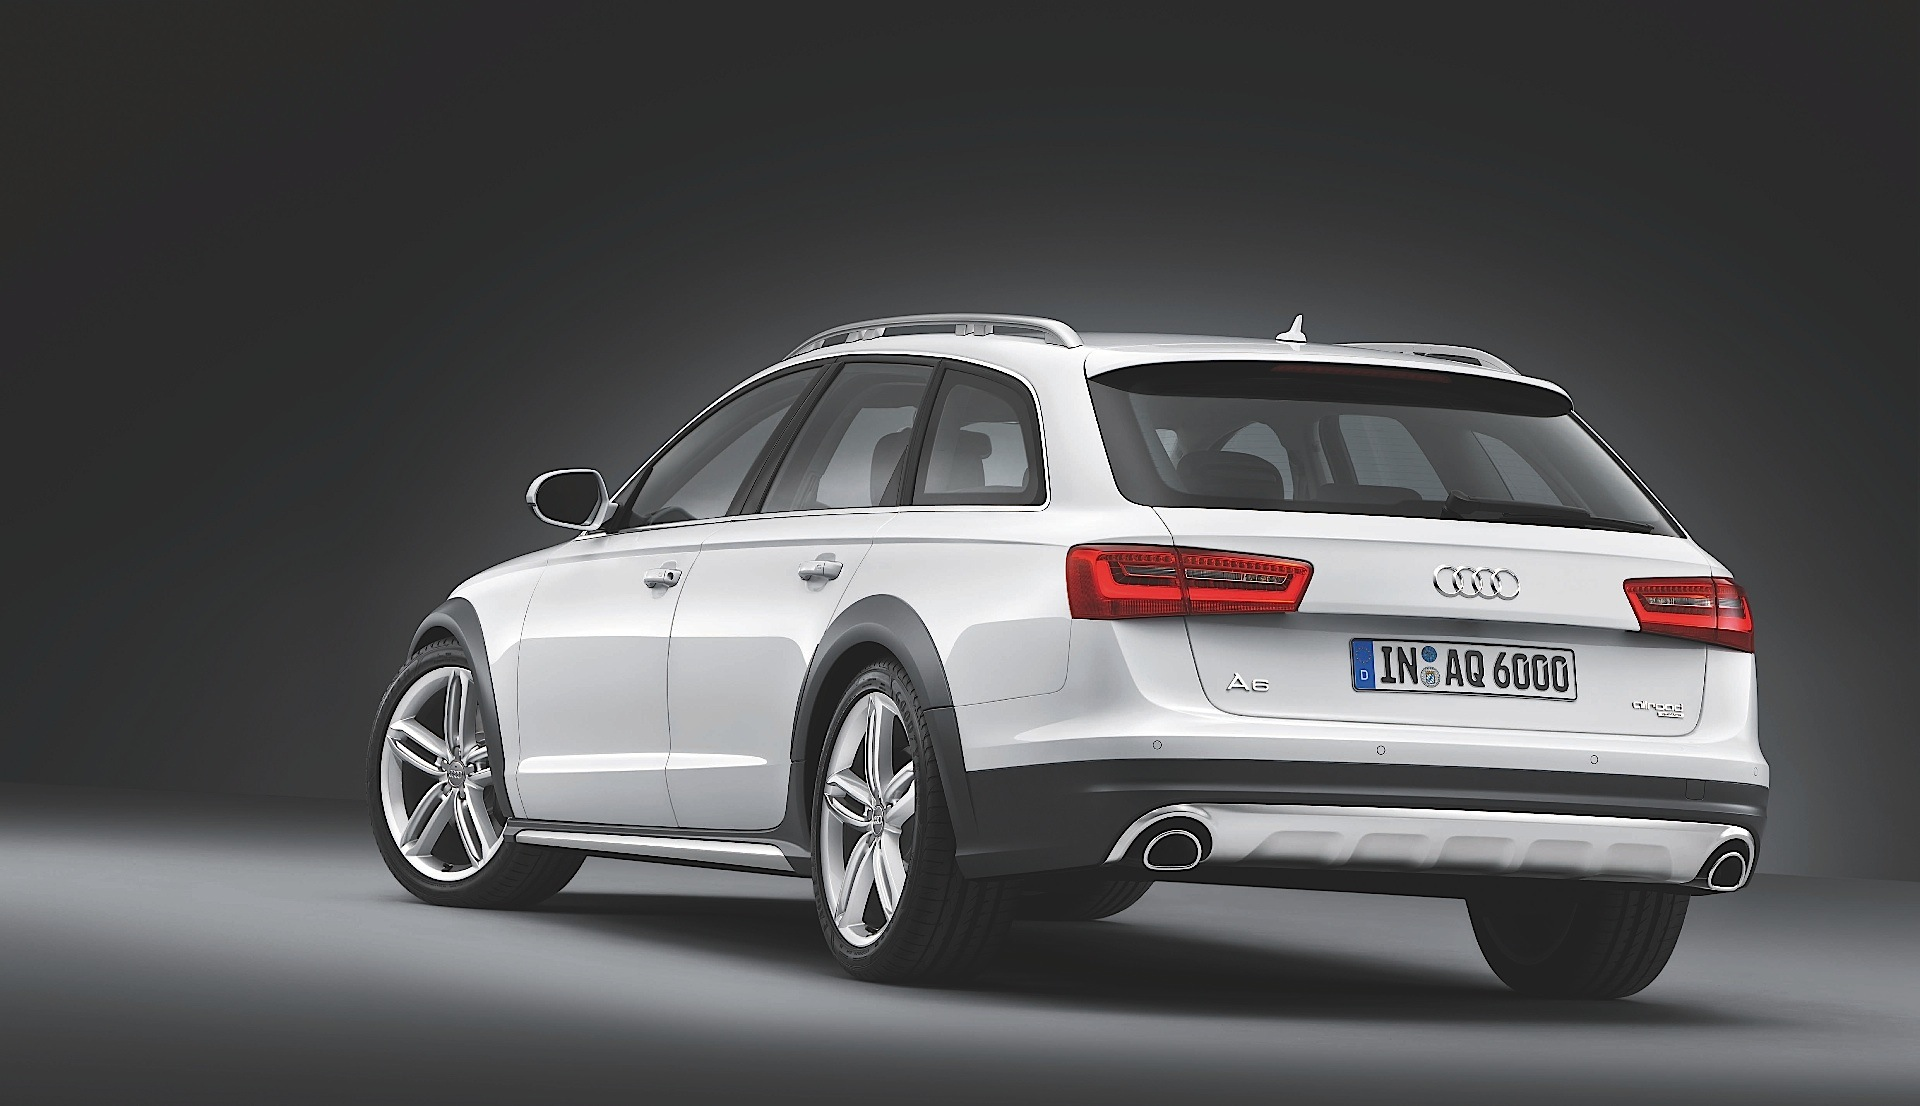 audi allroad specs 2012 2013 2014 2015 2016 2017 2018 autoevolution. Black Bedroom Furniture Sets. Home Design Ideas